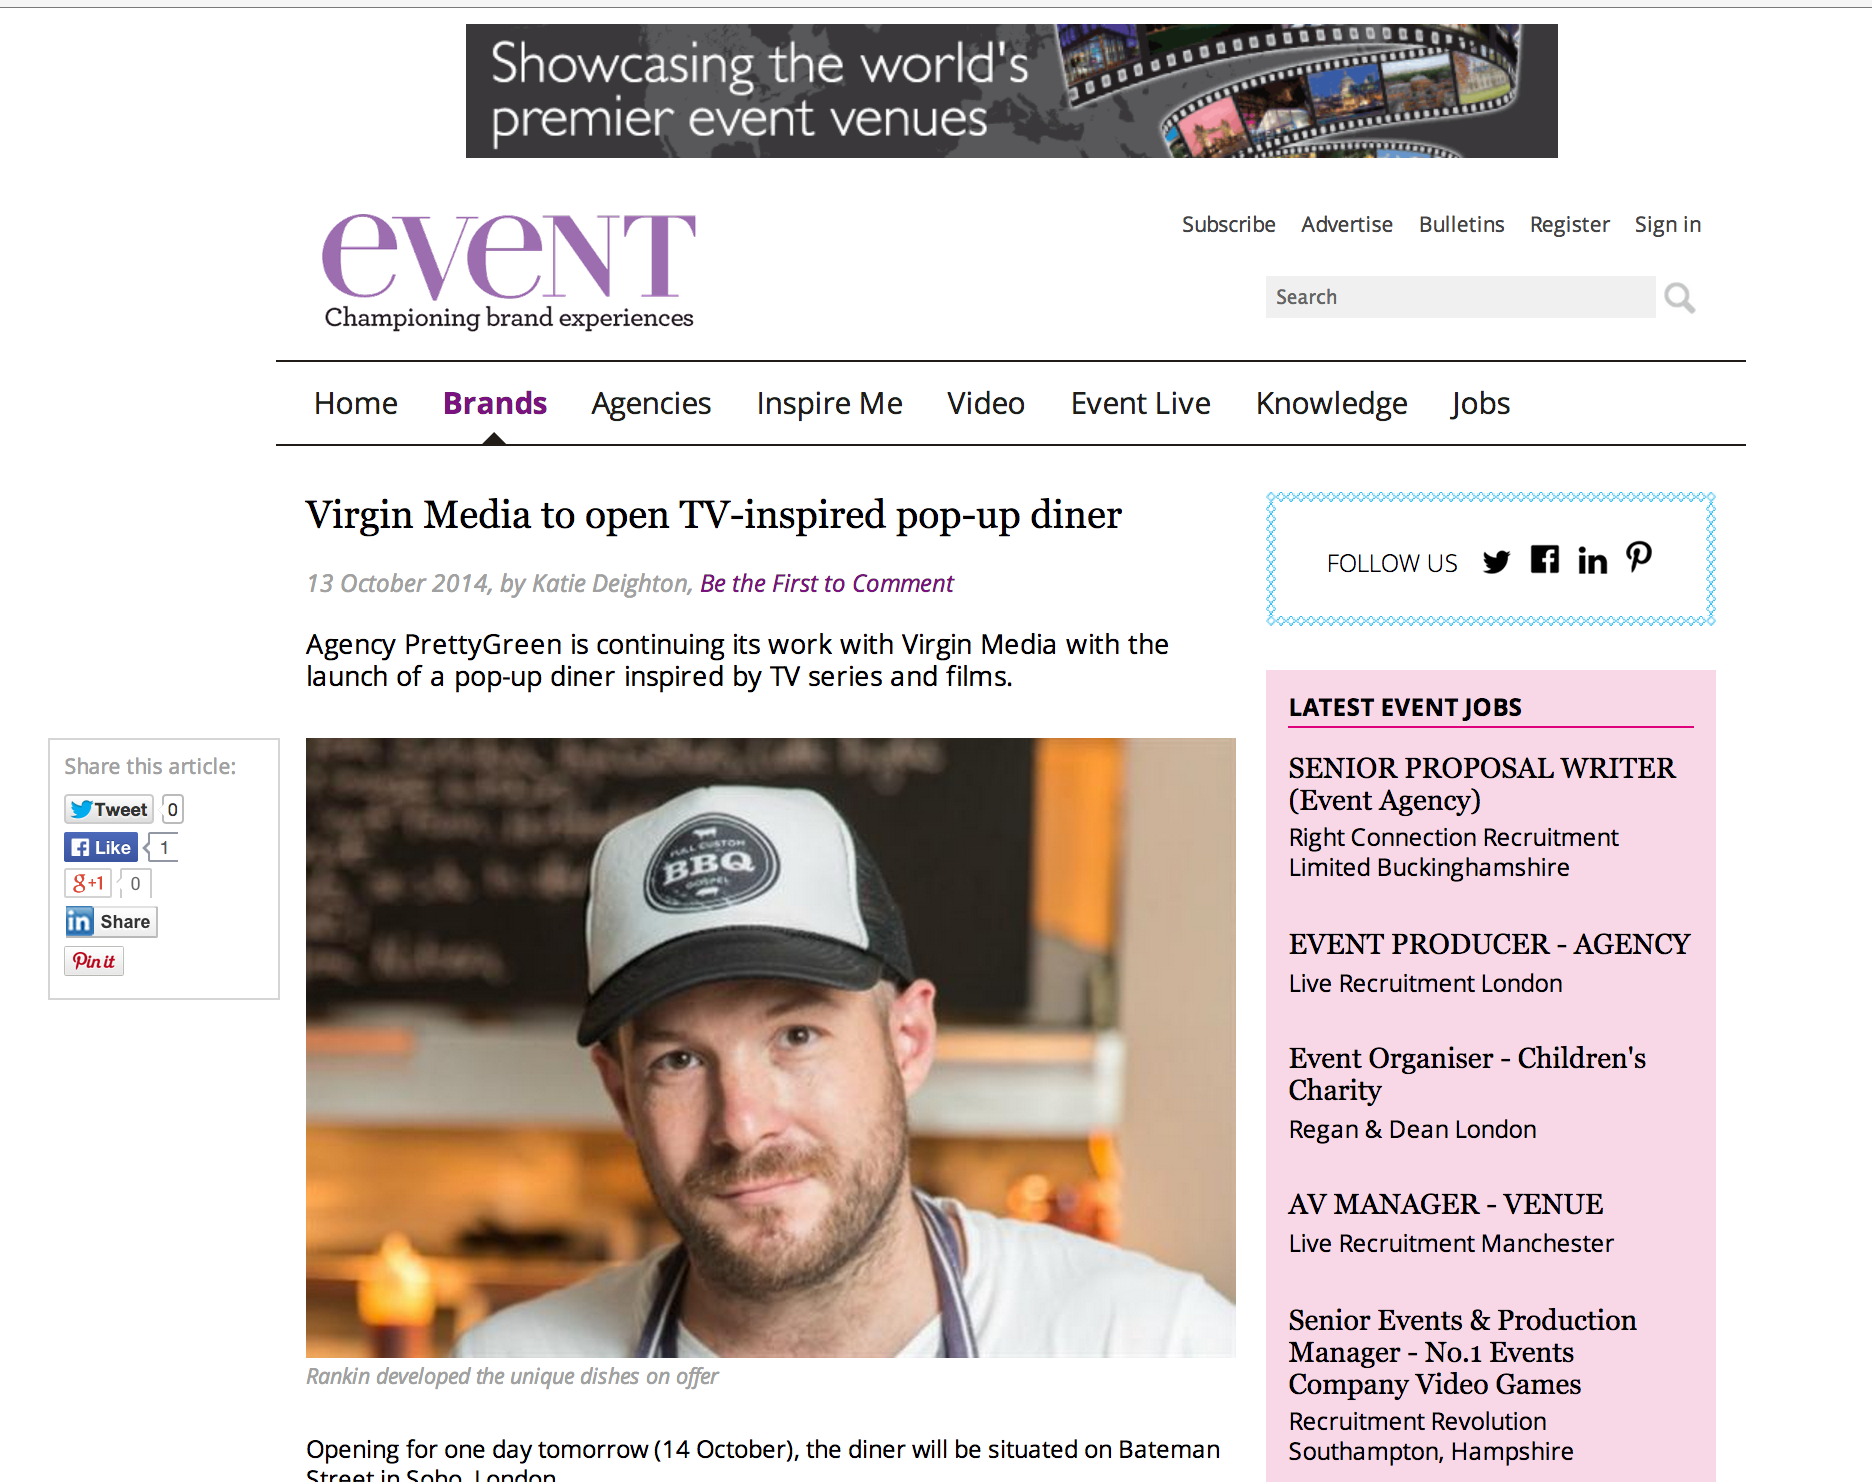 EventMagazine.co.uk